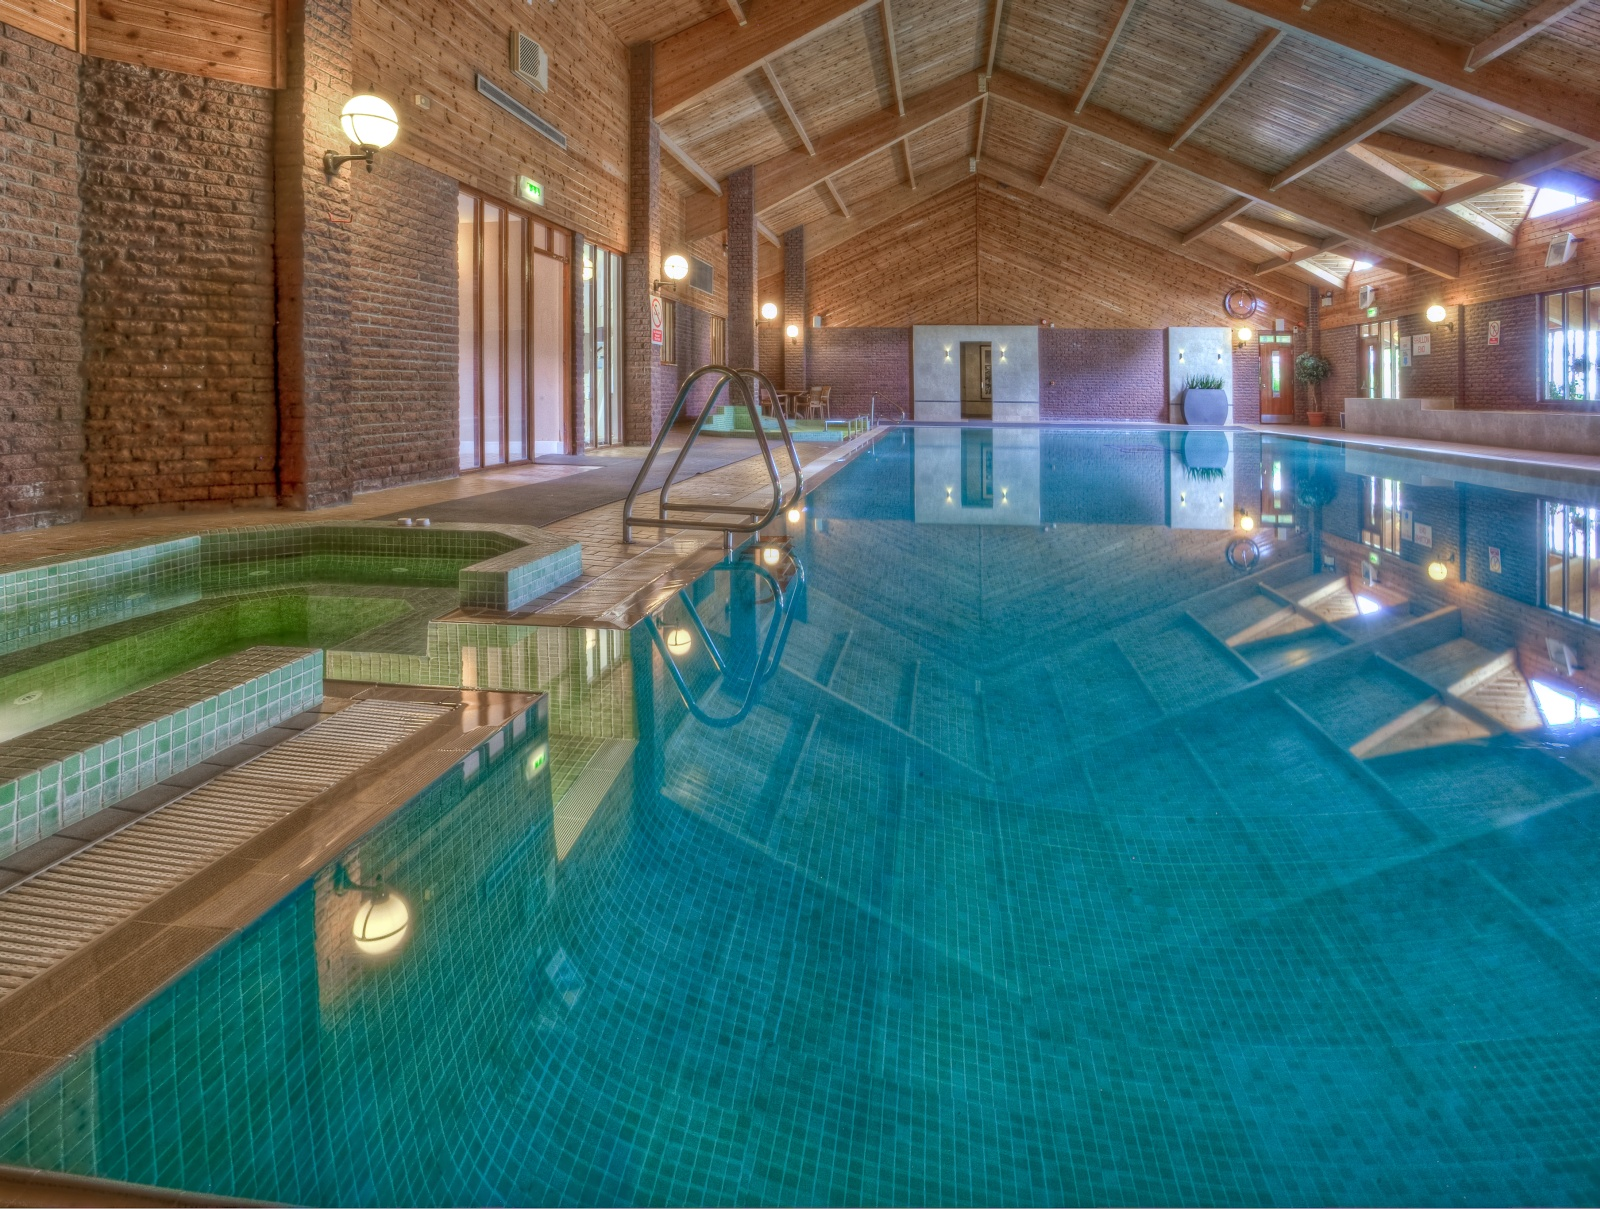 Auchrannie house hotel and spa - Hotels with swimming pools in scotland ...